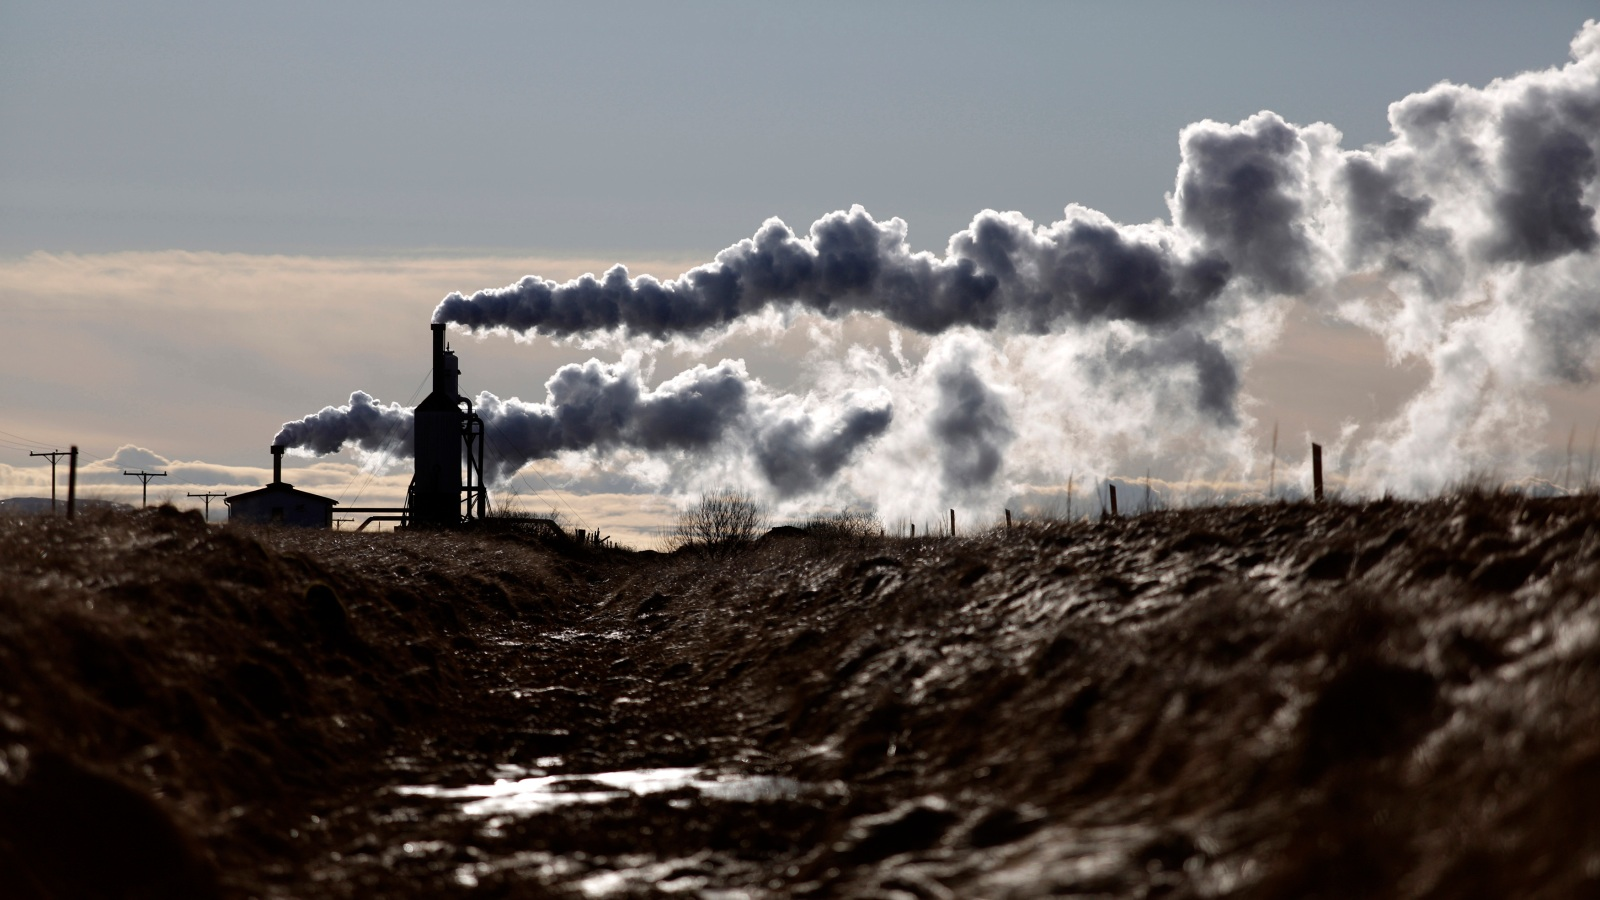 qz.com - Michael J. Coren - This is the year oil companies finally invest in geothermal